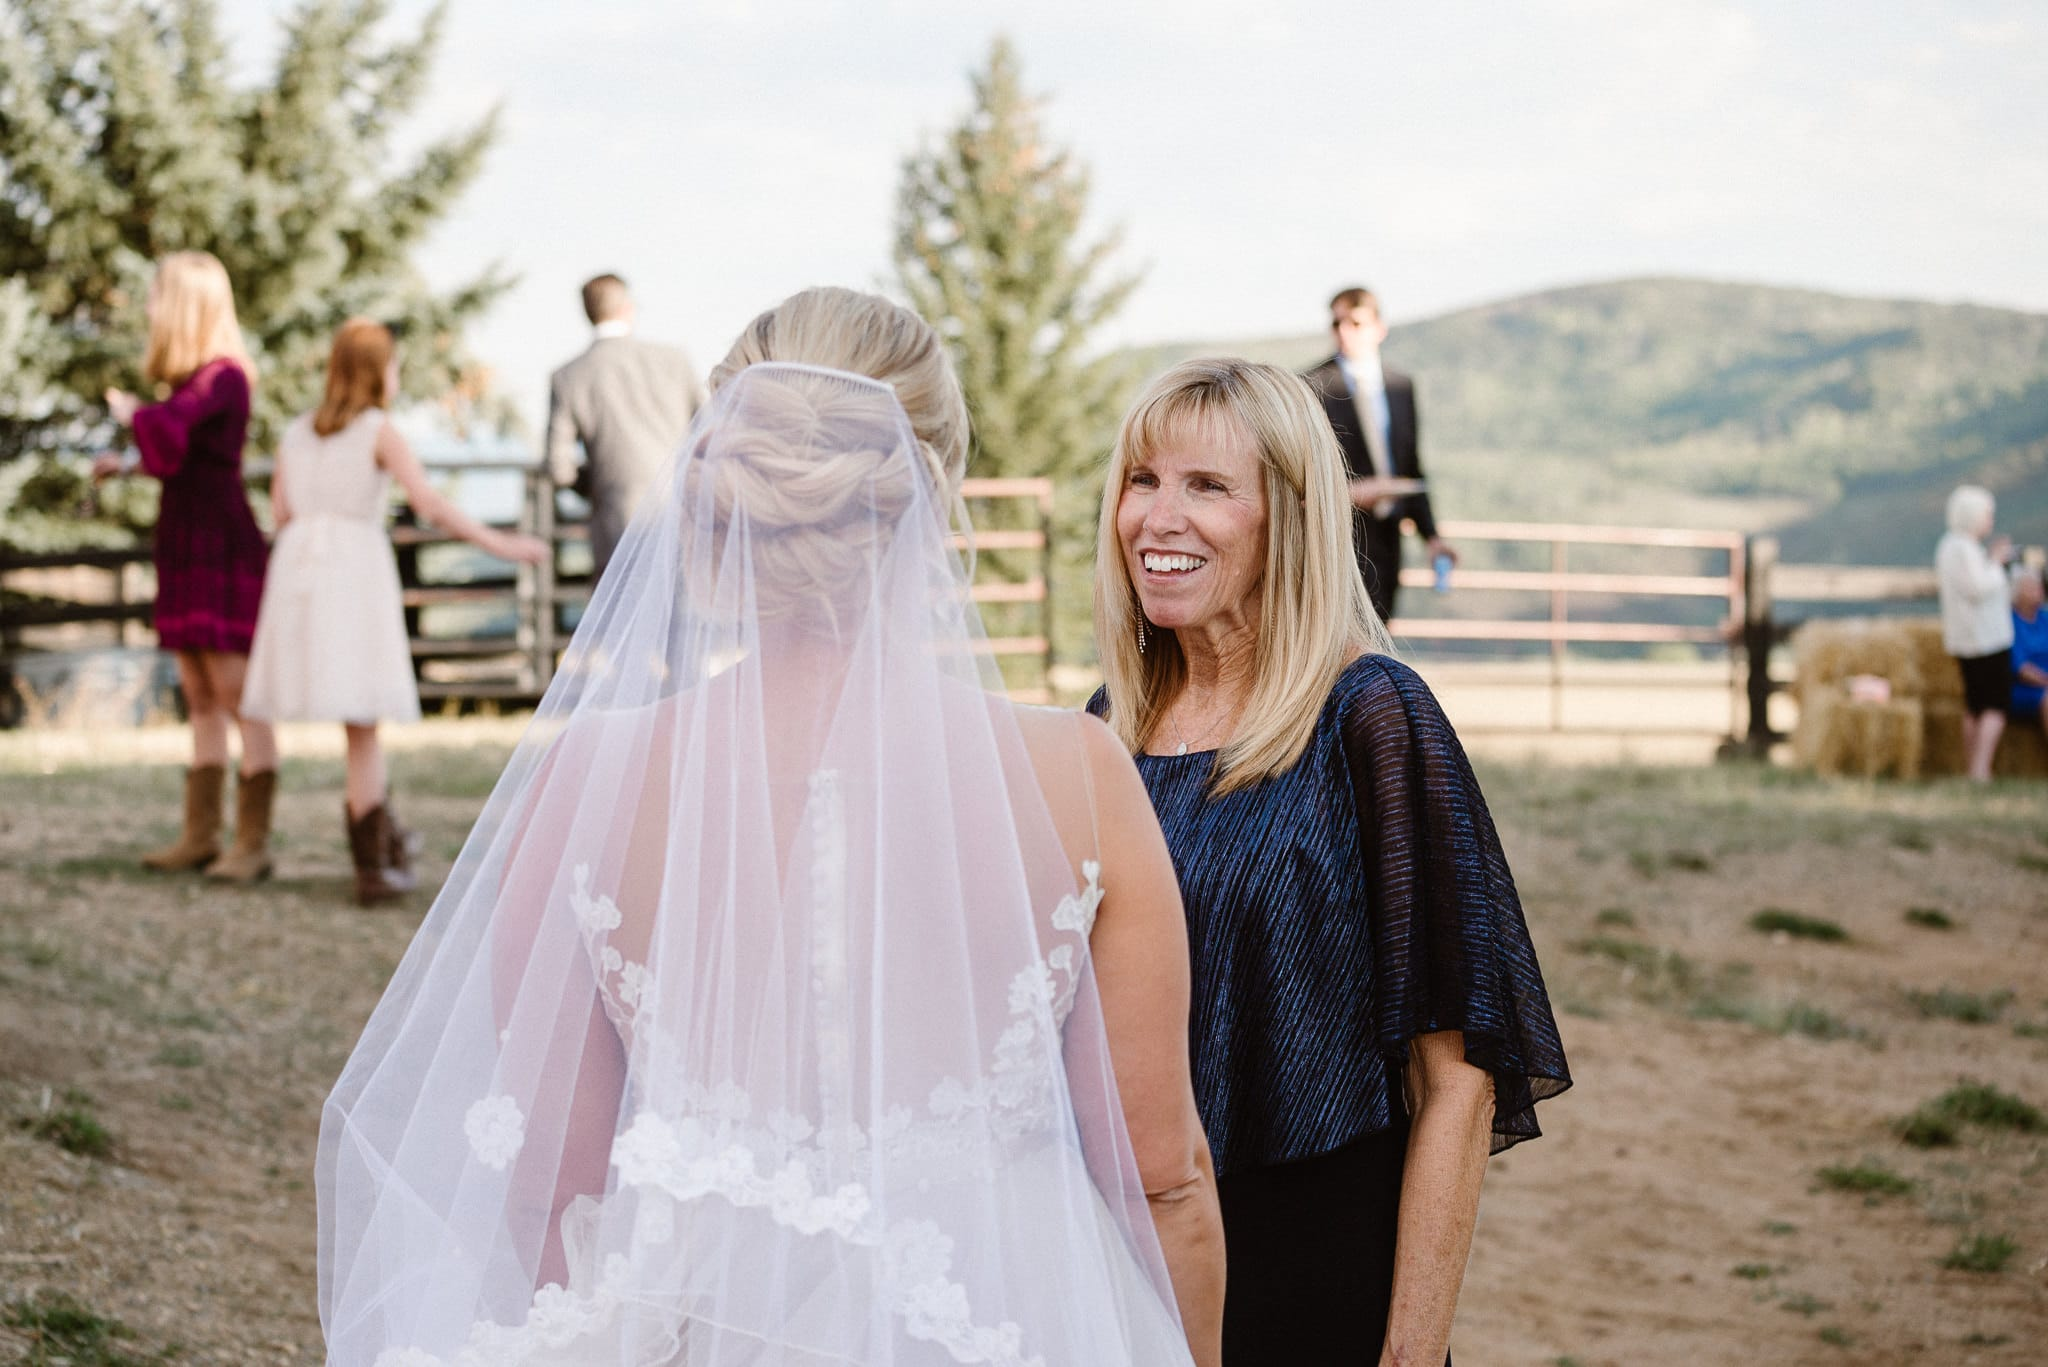 Steamboat Springs wedding photographer, La Joya Dulce wedding, Colorado ranch wedding venues, bride talking to her mom